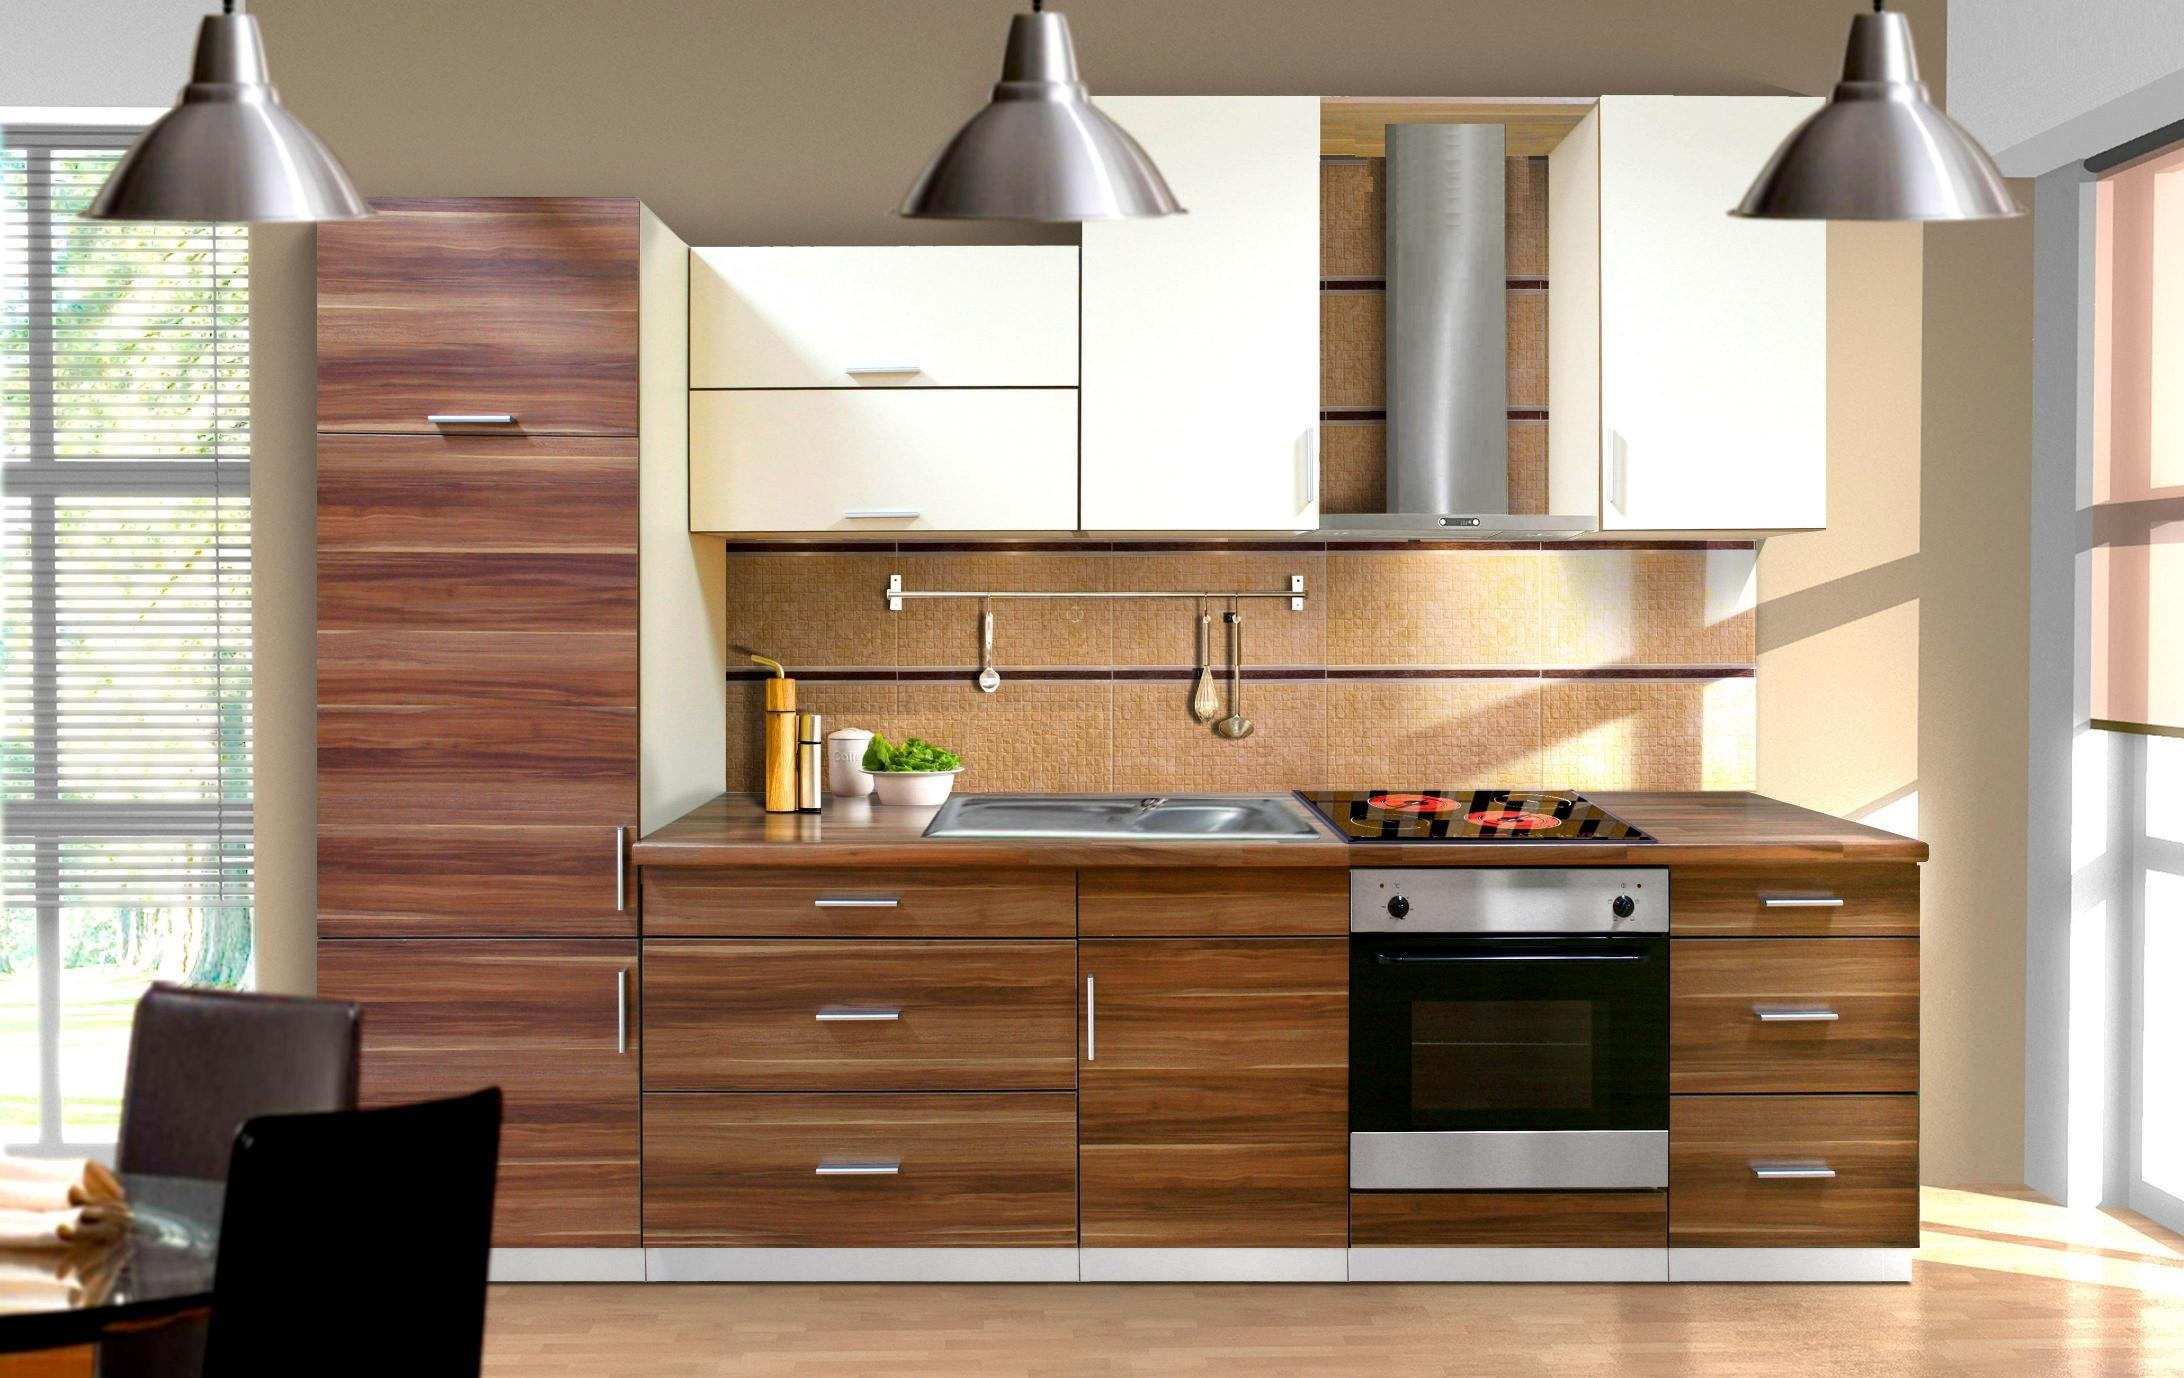 Modern Wood Kitchen Cabinets2184 X 1378